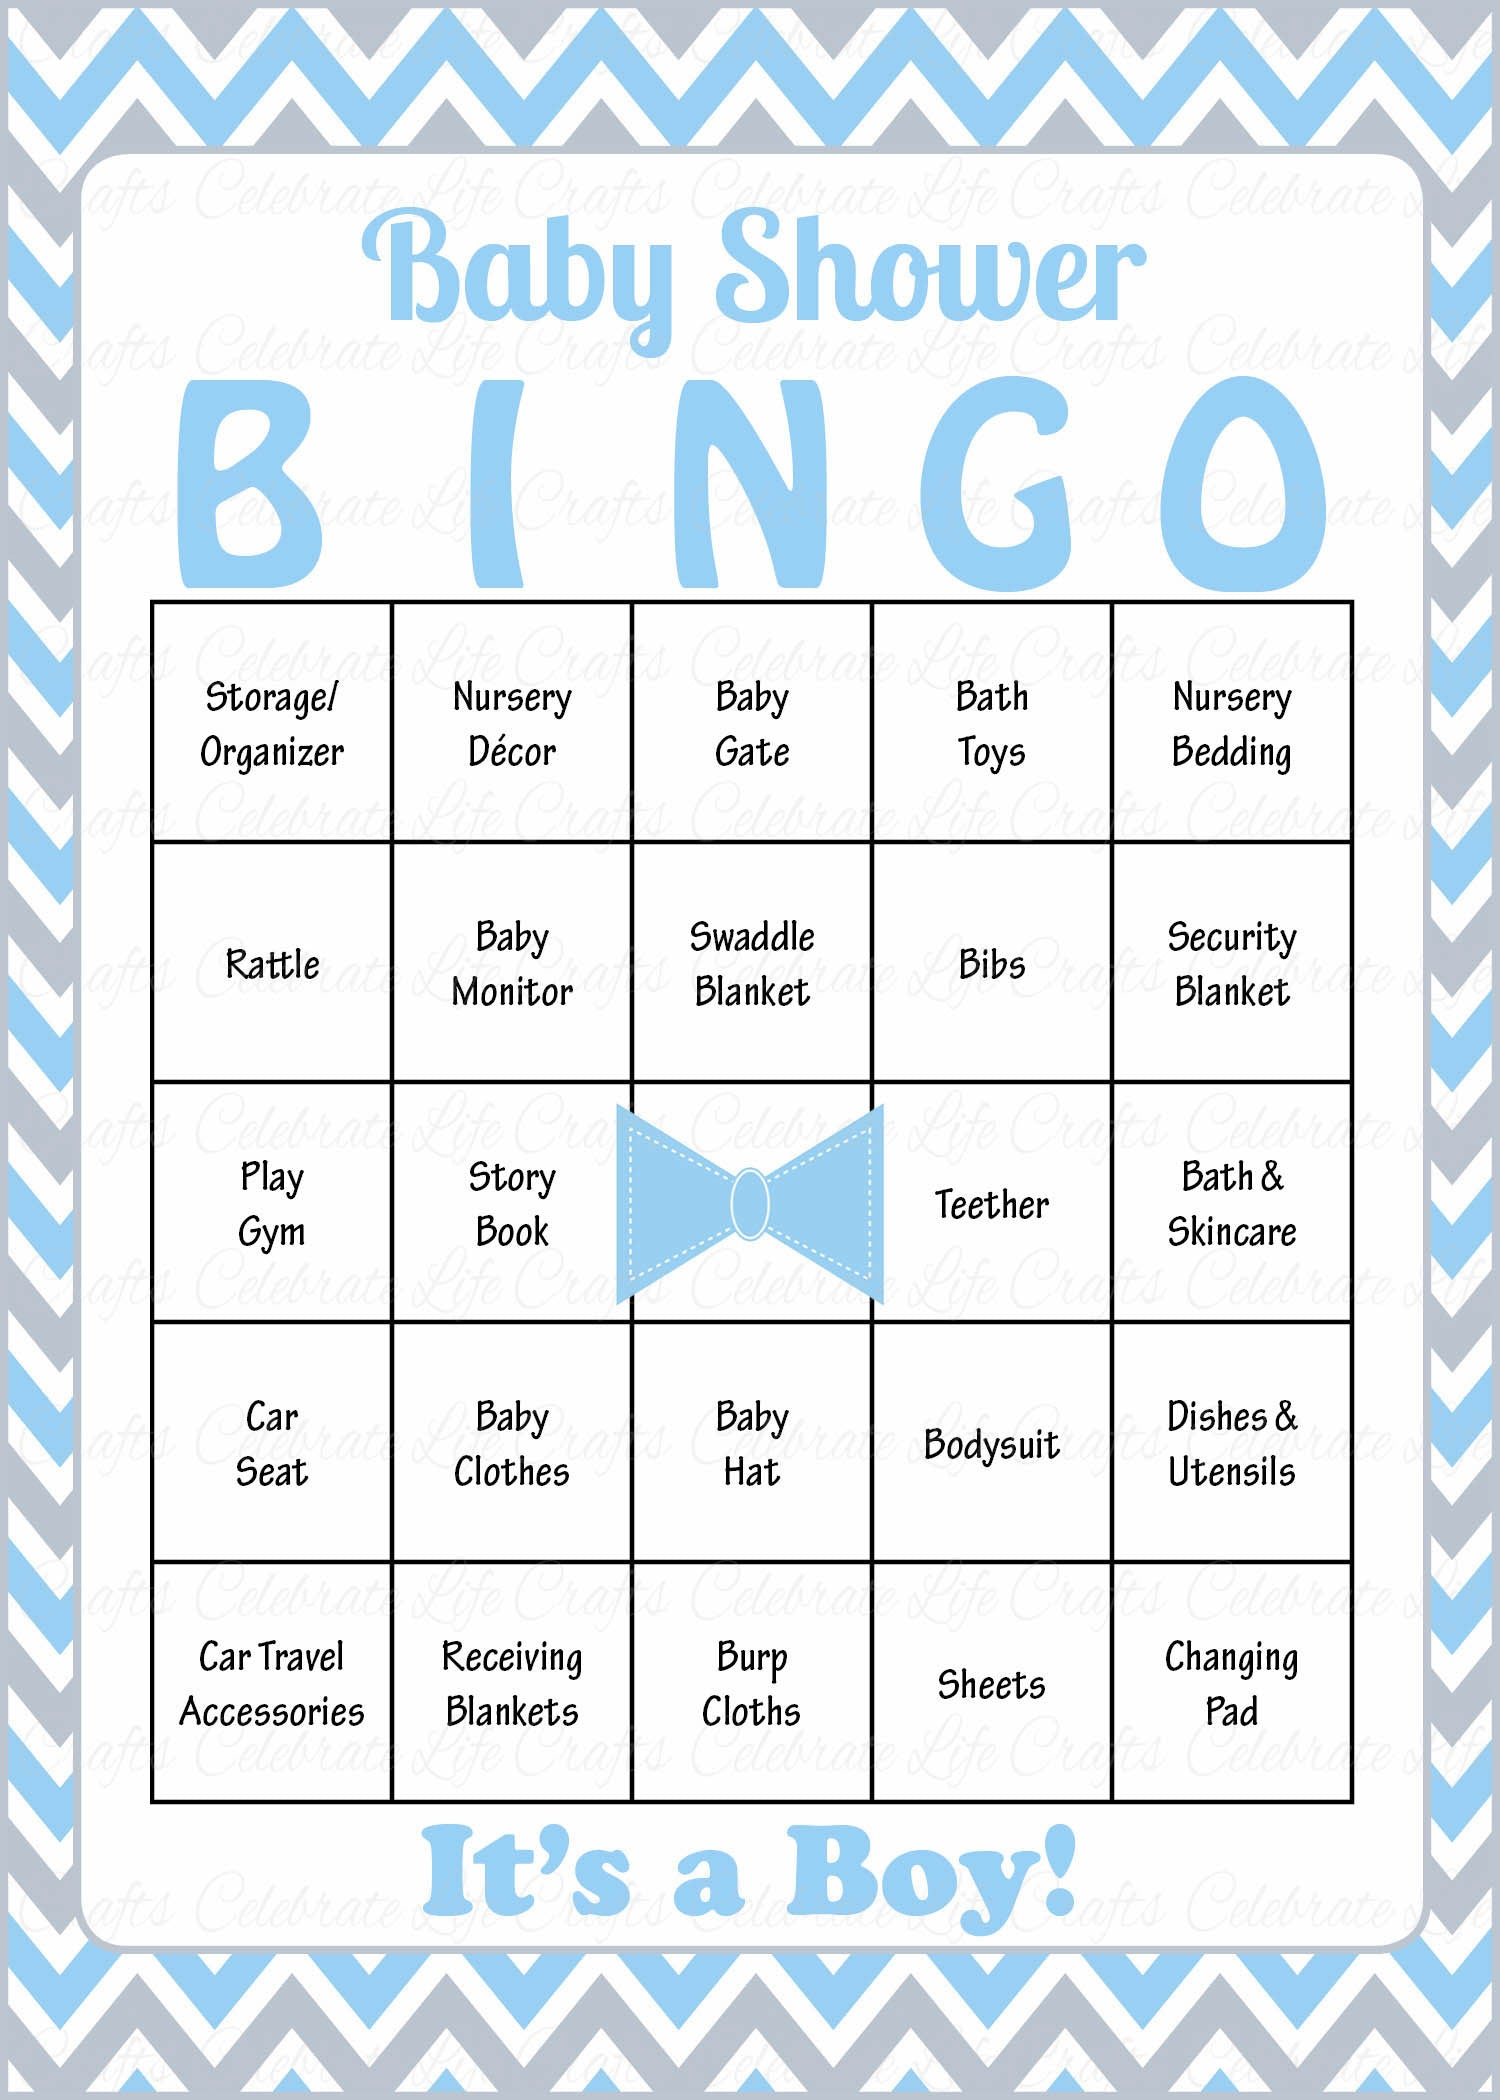 Little Man Baby Bingo Cards   PRINTABLE DOWNLOAD   Prefilled   Baby Shower  Game For Boy   Blue Gray Bowtie   B1008.